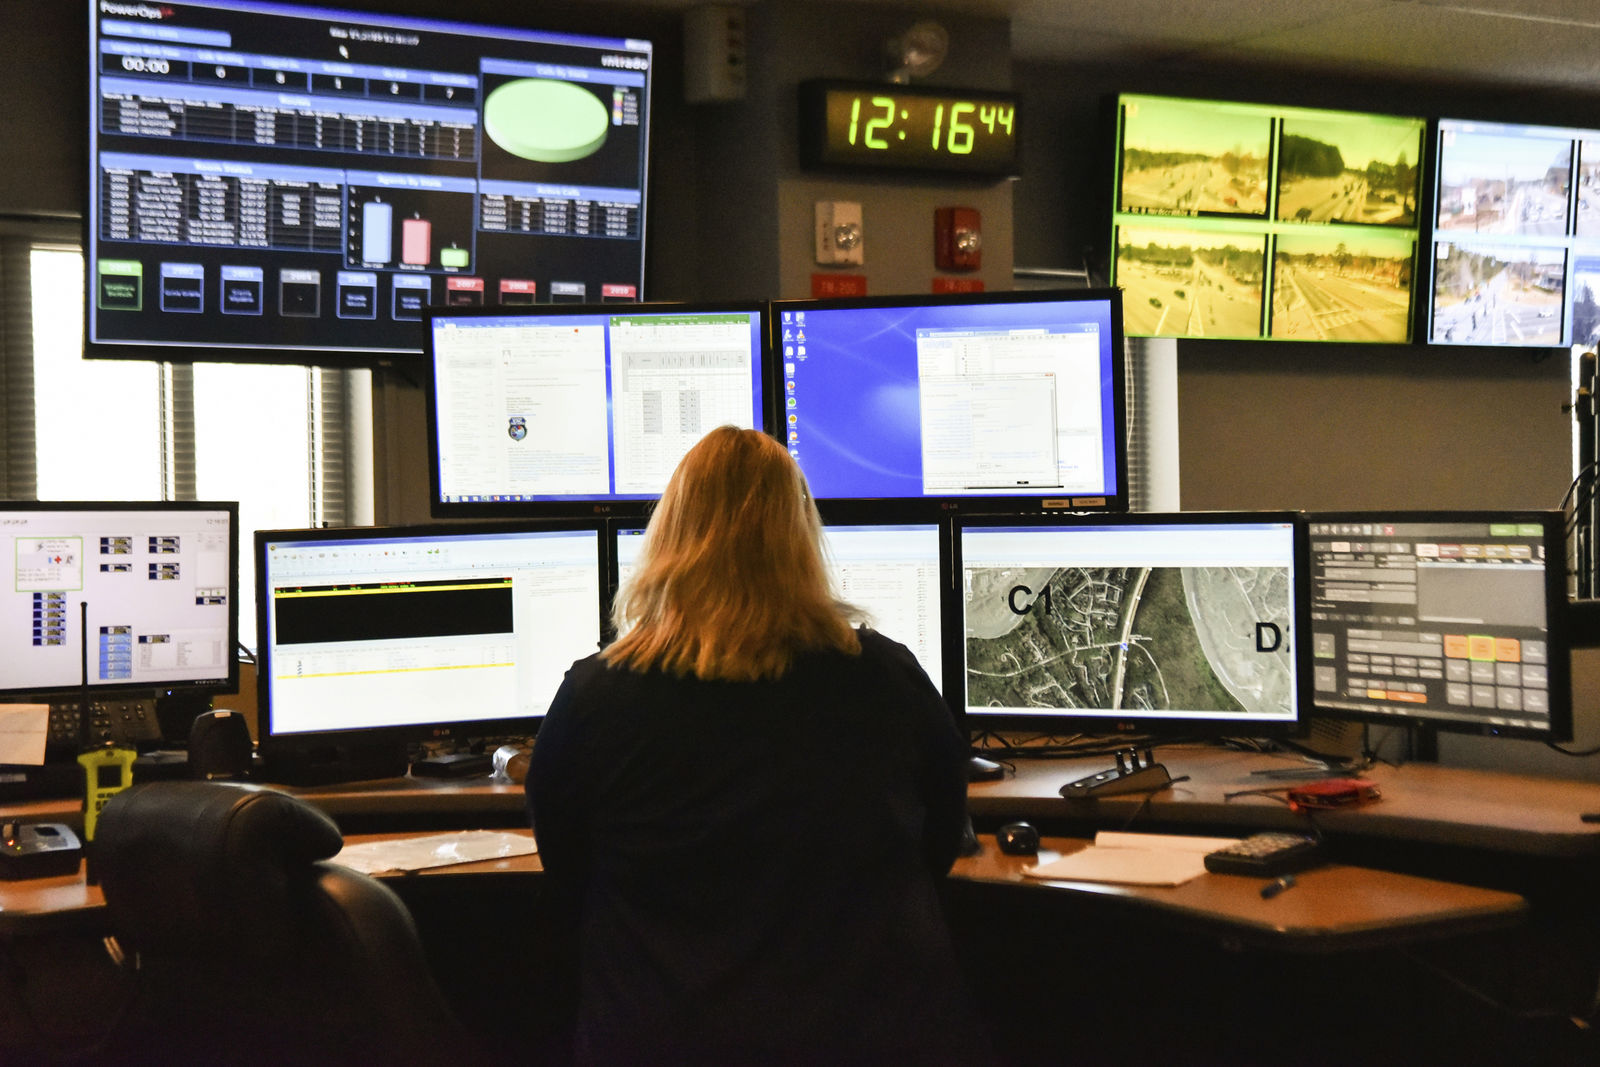 FILE - In this March 15, 2018, file photo, a dispatcher works at a desk station with a variety of screens used by those who take 911 emergency calls. (AP Photo/Lisa Marie Pane, File)